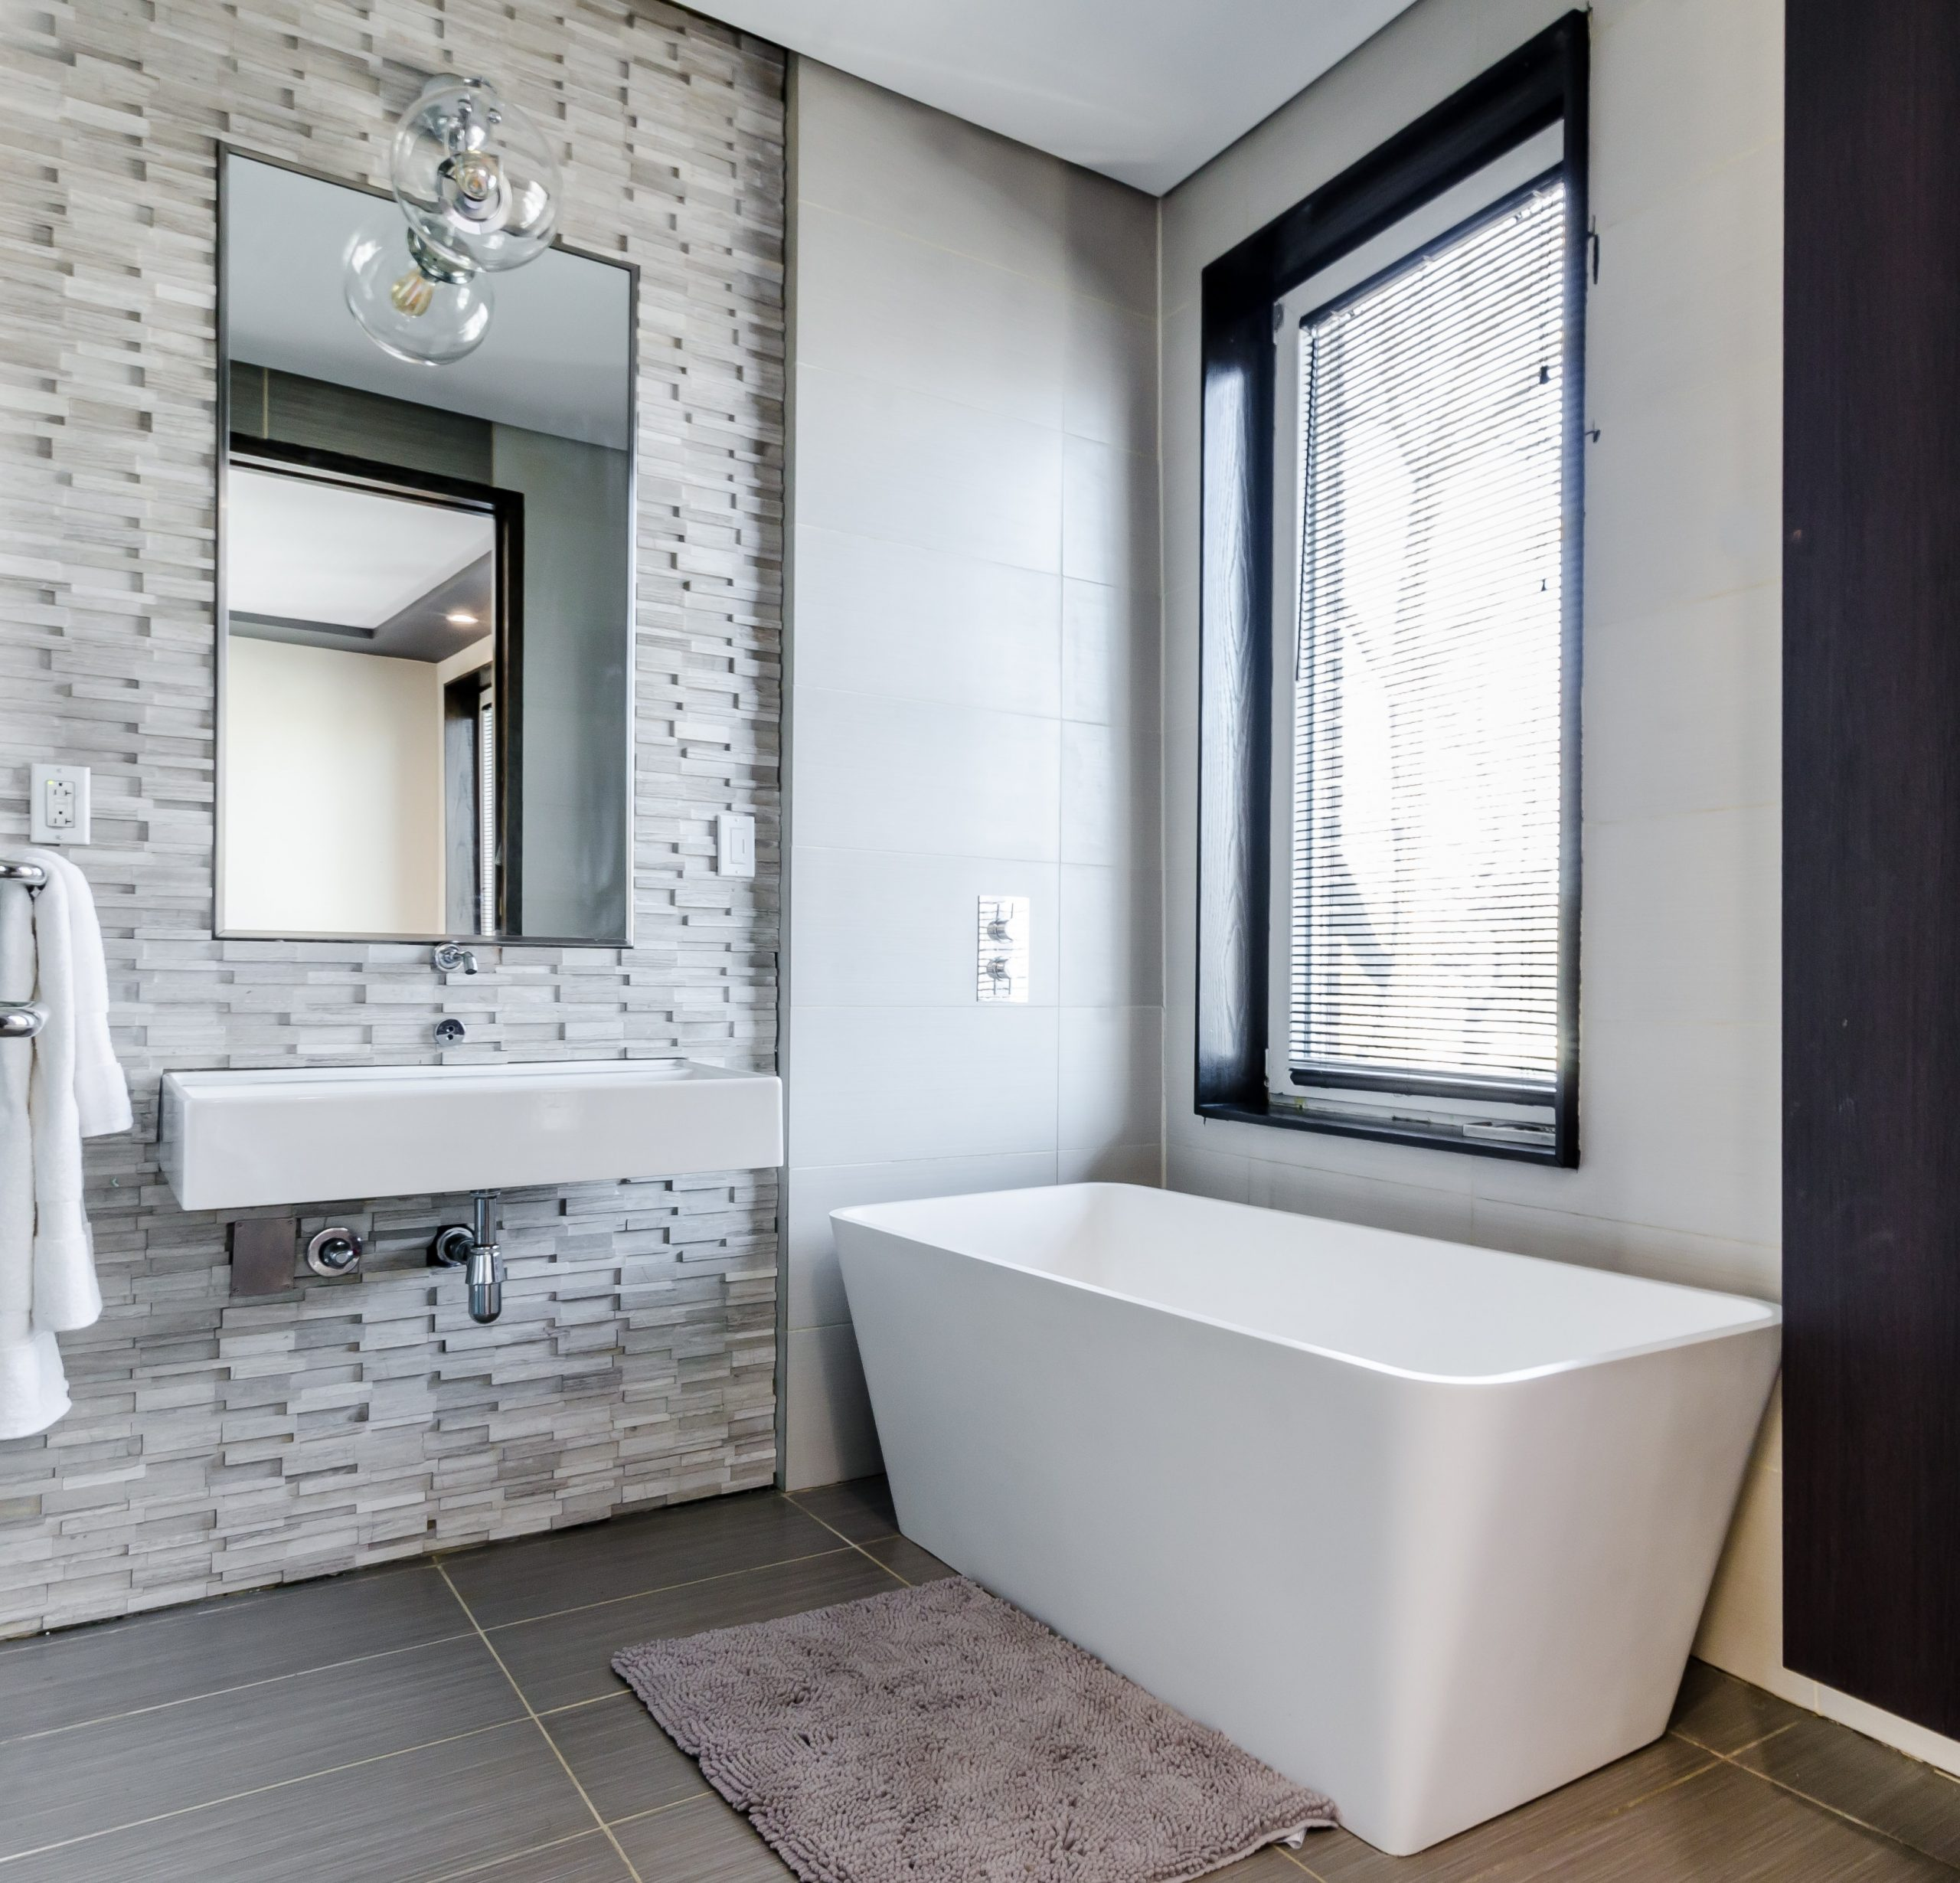 Bathroom trends to watch out for in 2020